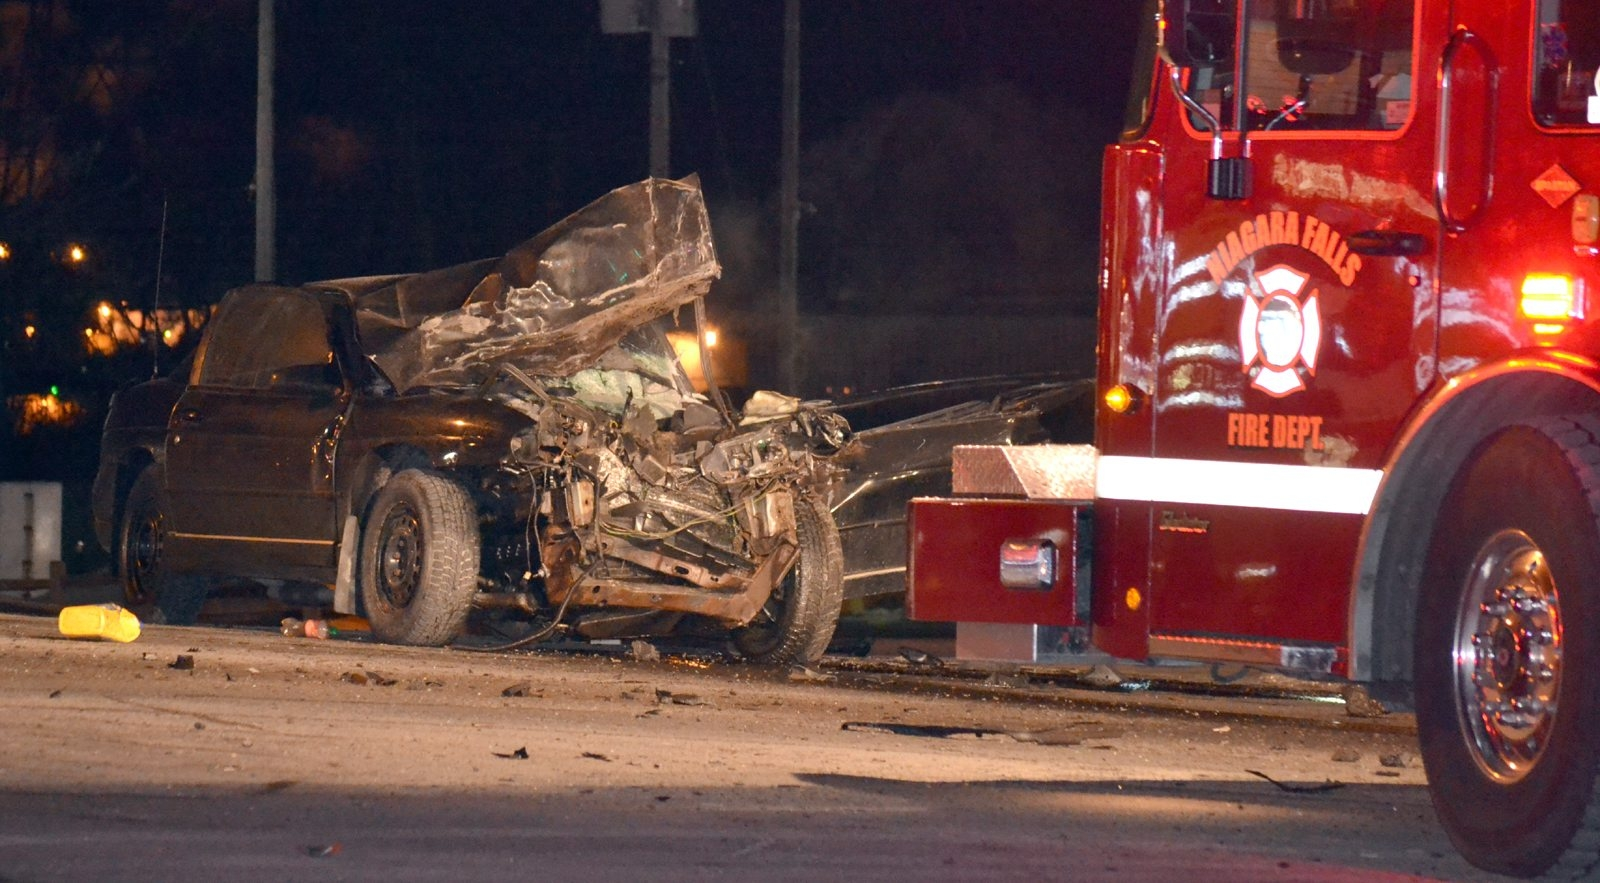 The Monte Carlo driven by Lewis R. Worrells of Niagara Falls was totaled after State Police said it rear-ended another vehicle while Worrells was fleeing police. Worrells died from injuries suffered in the crash.